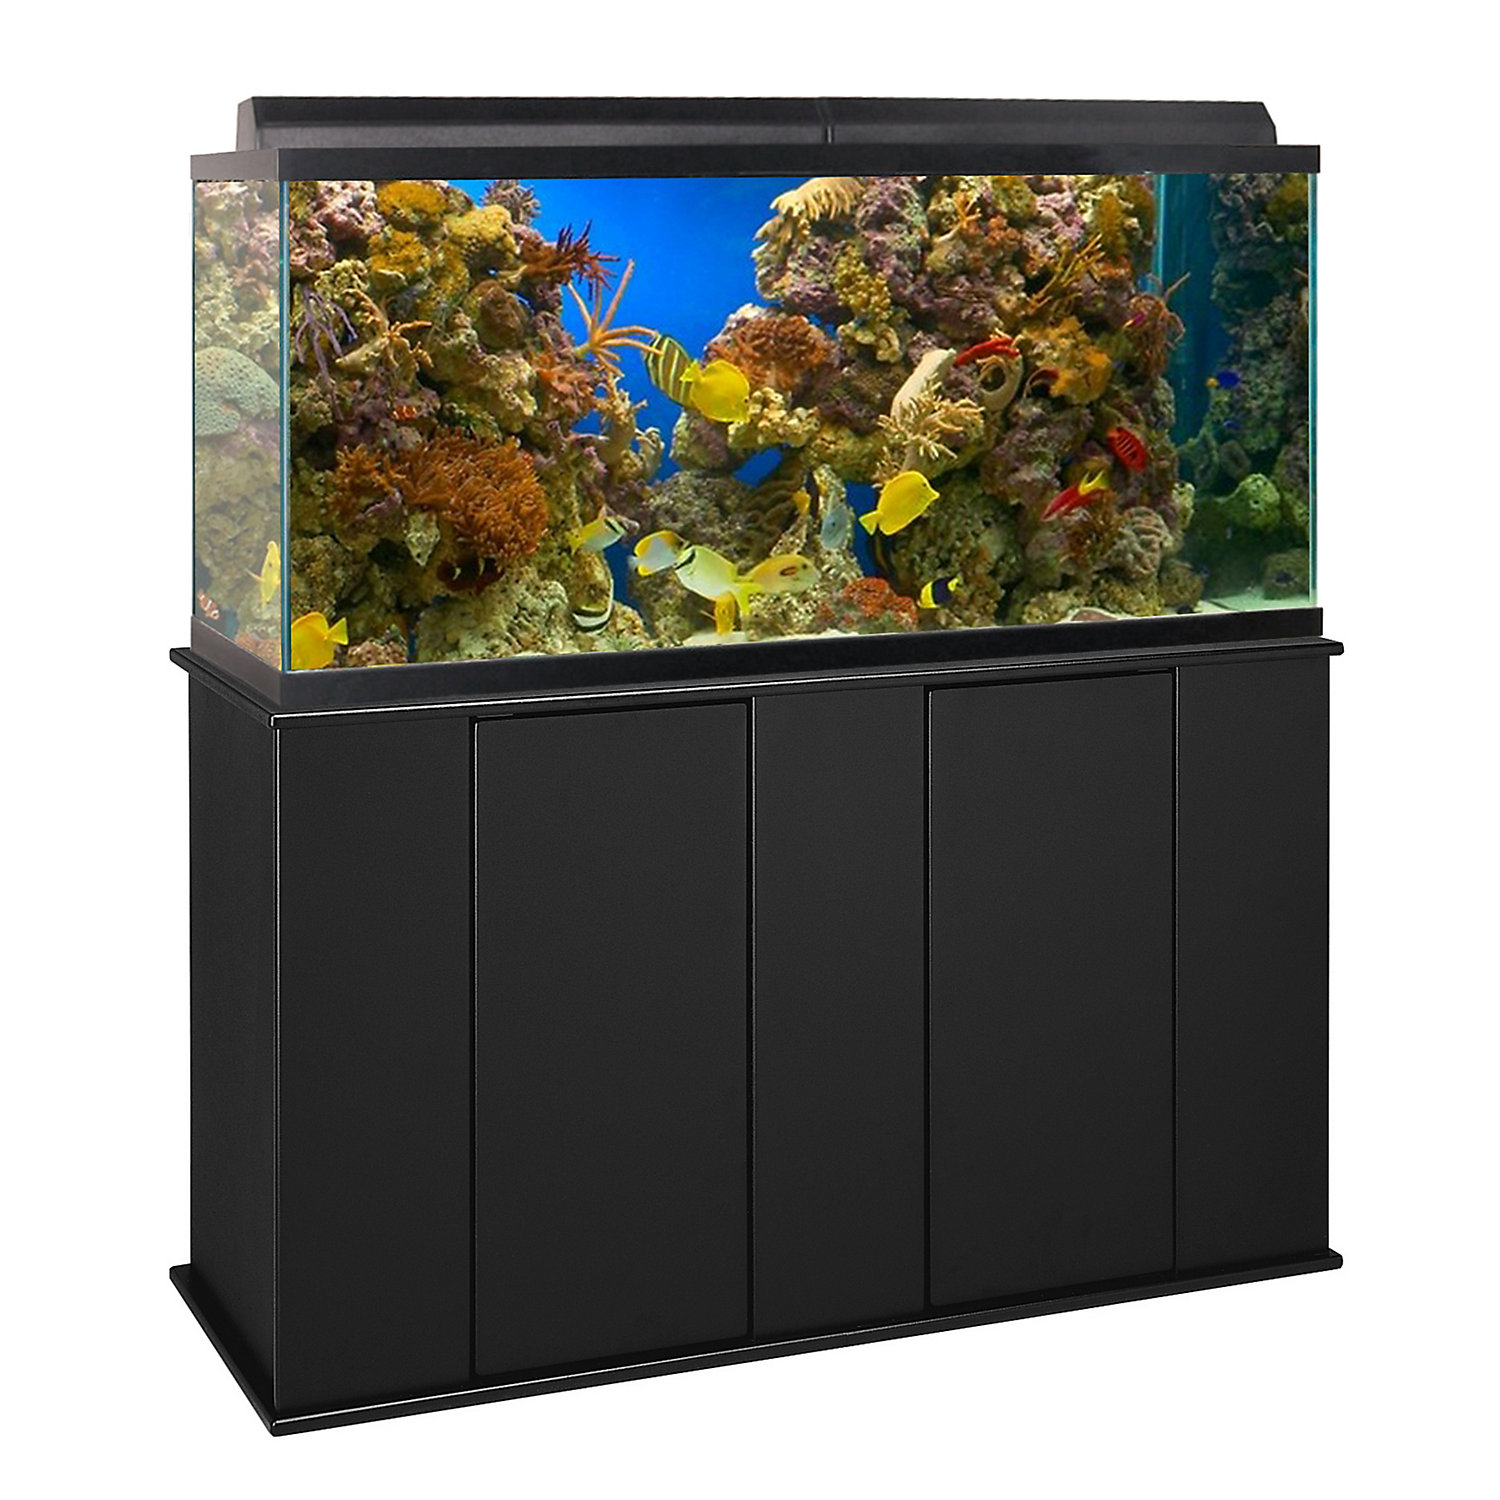 Aquatic Fundamentals 75 Gallon Upright Aquarium Stand 75 90 Gallons Black